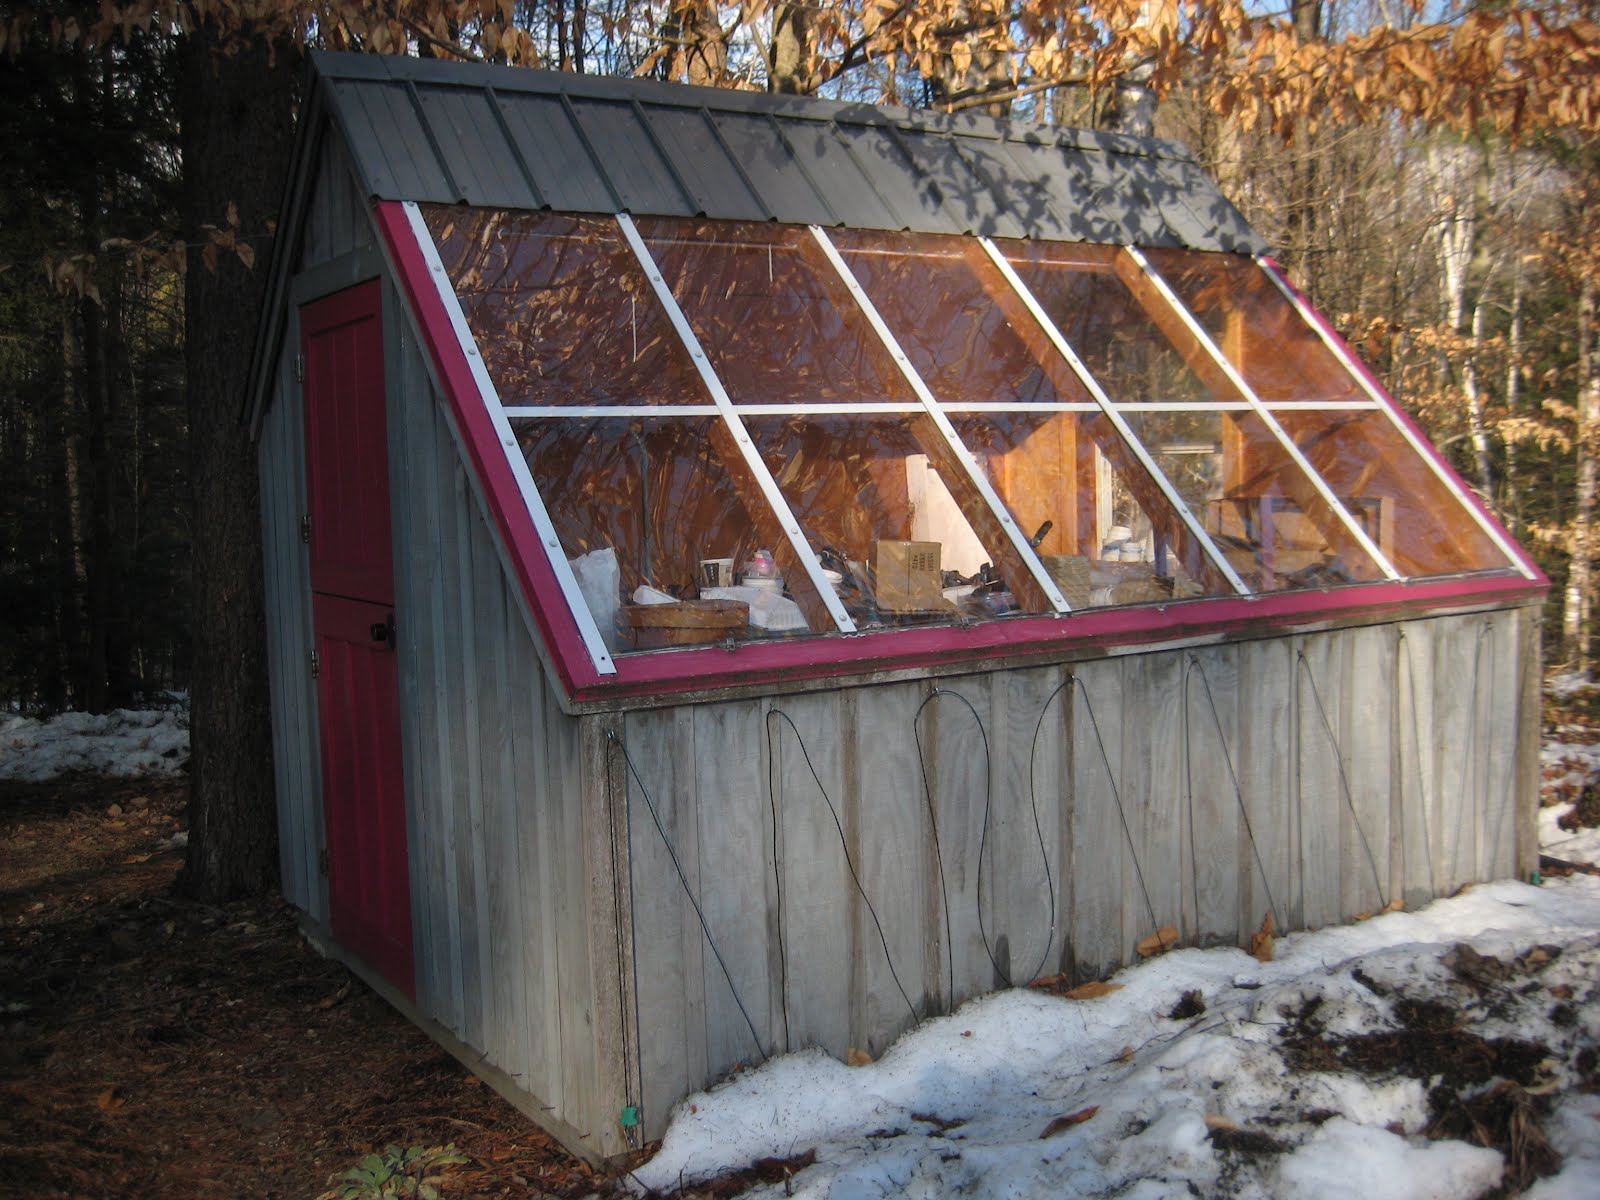 Sunshed. I Bought The Cutest Garden Shed ...